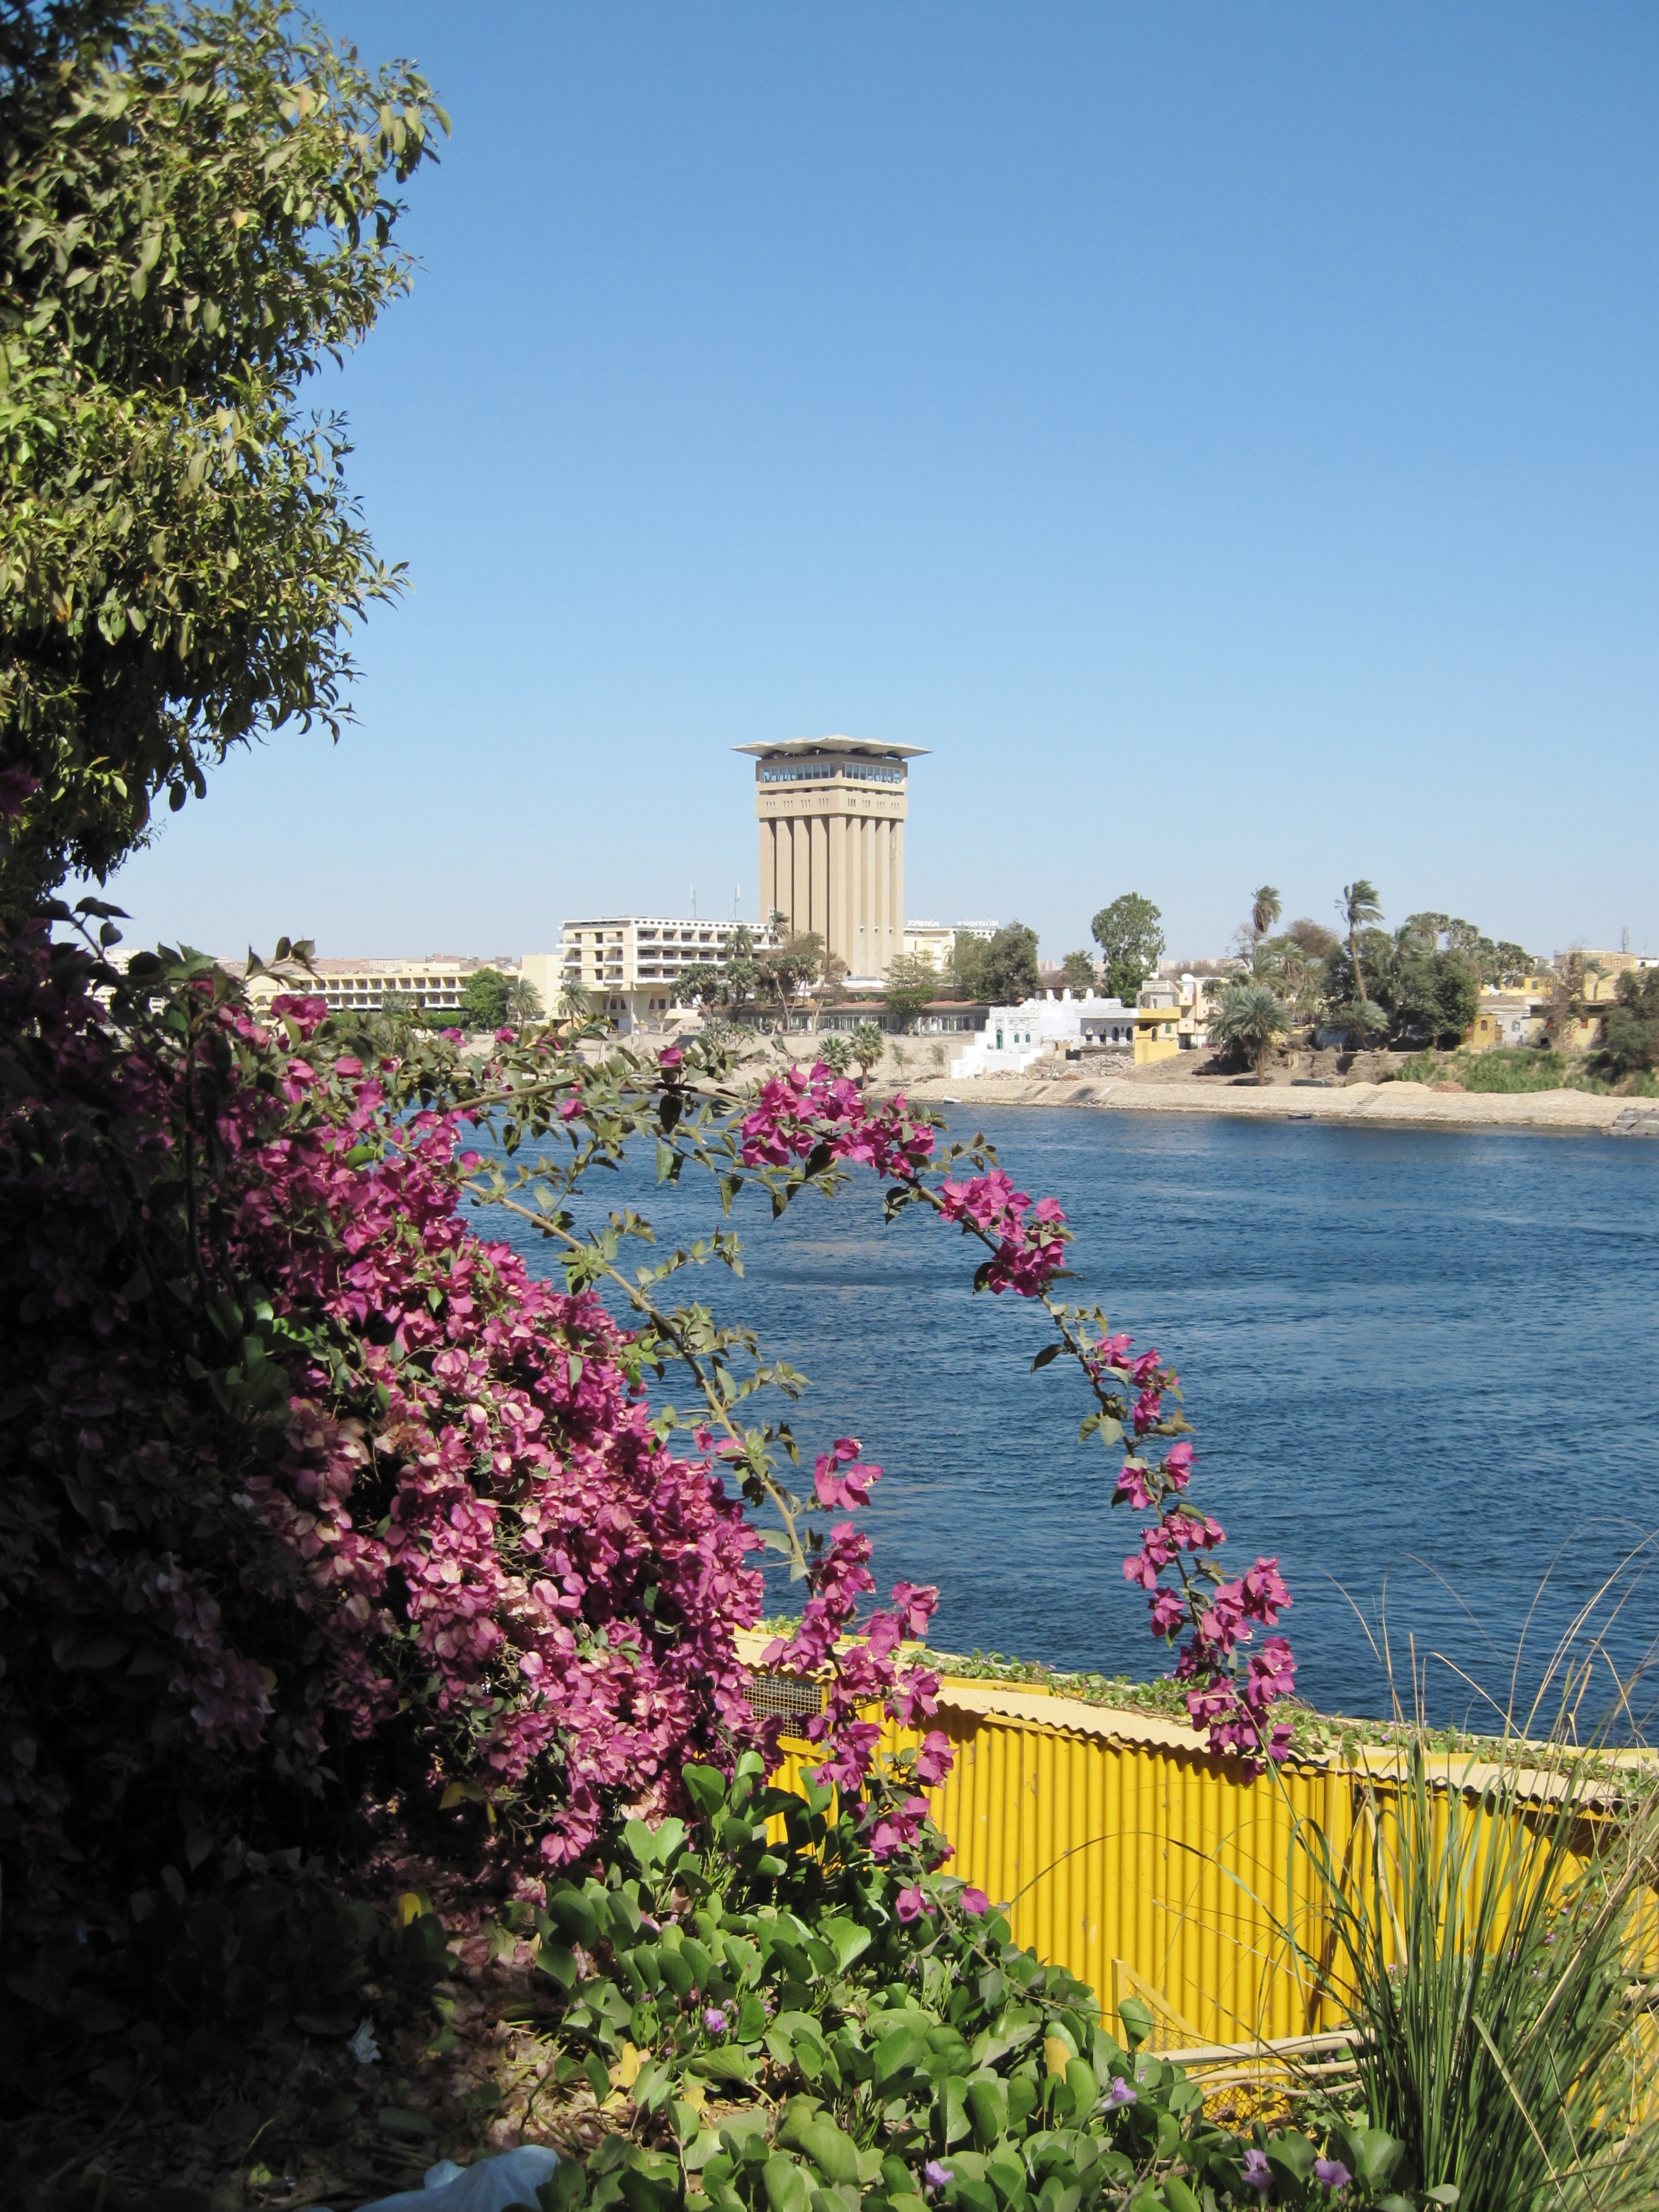 Photos of Kitchener\'s Island - Page 2 - Tourism in Egypt